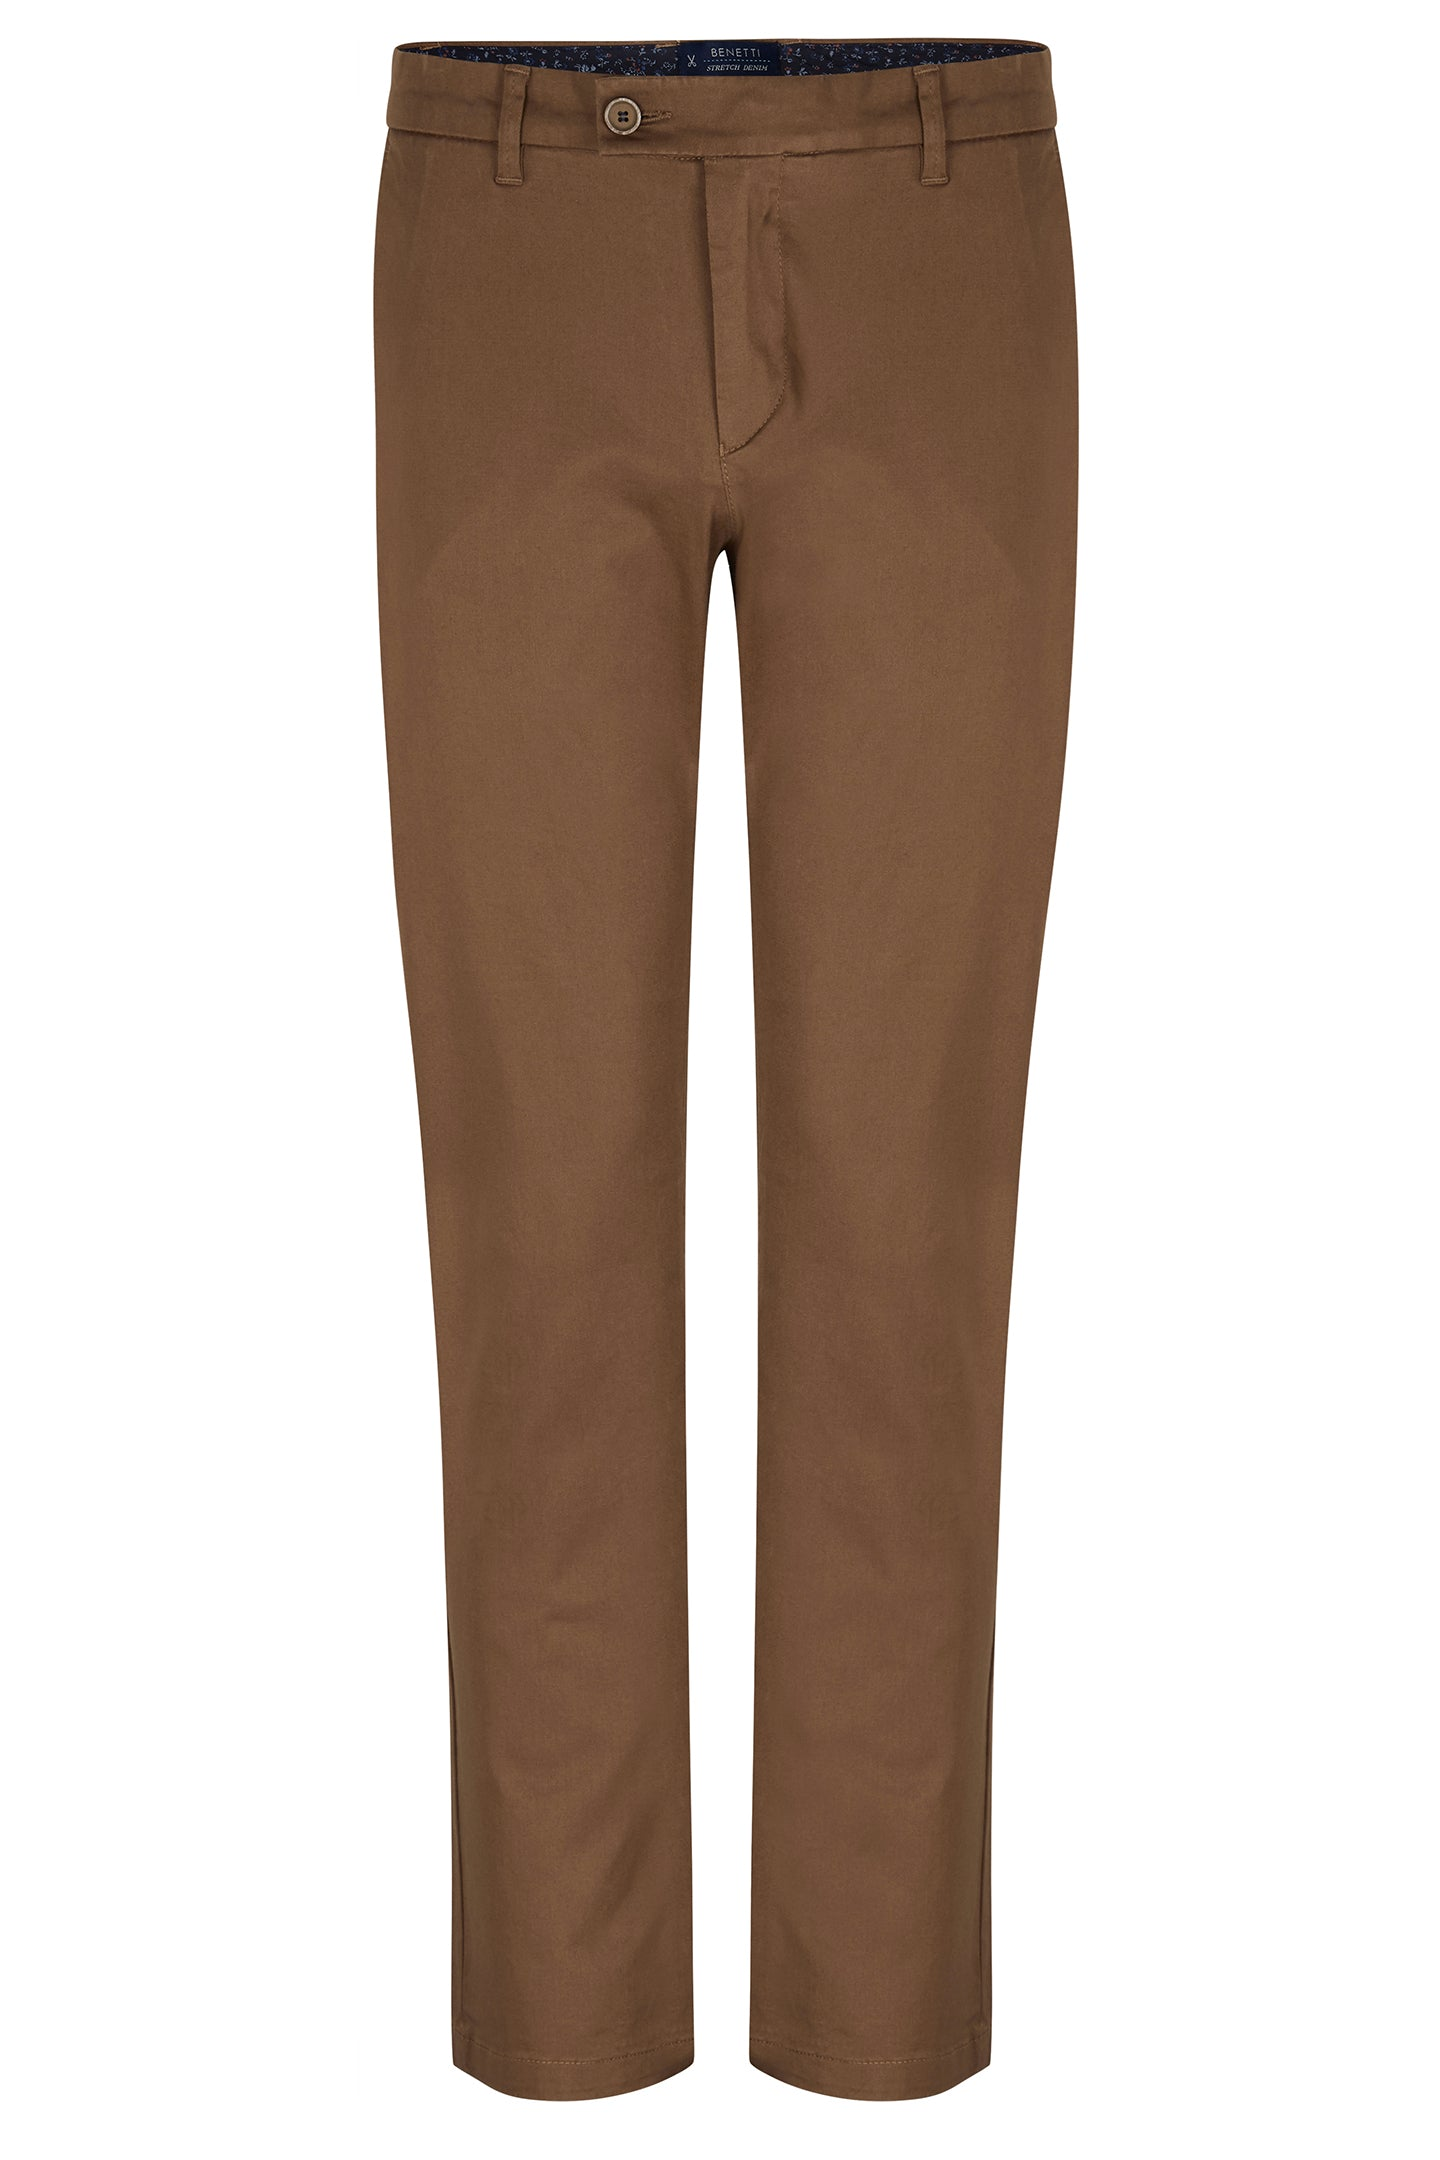 Oscar Brown Chino